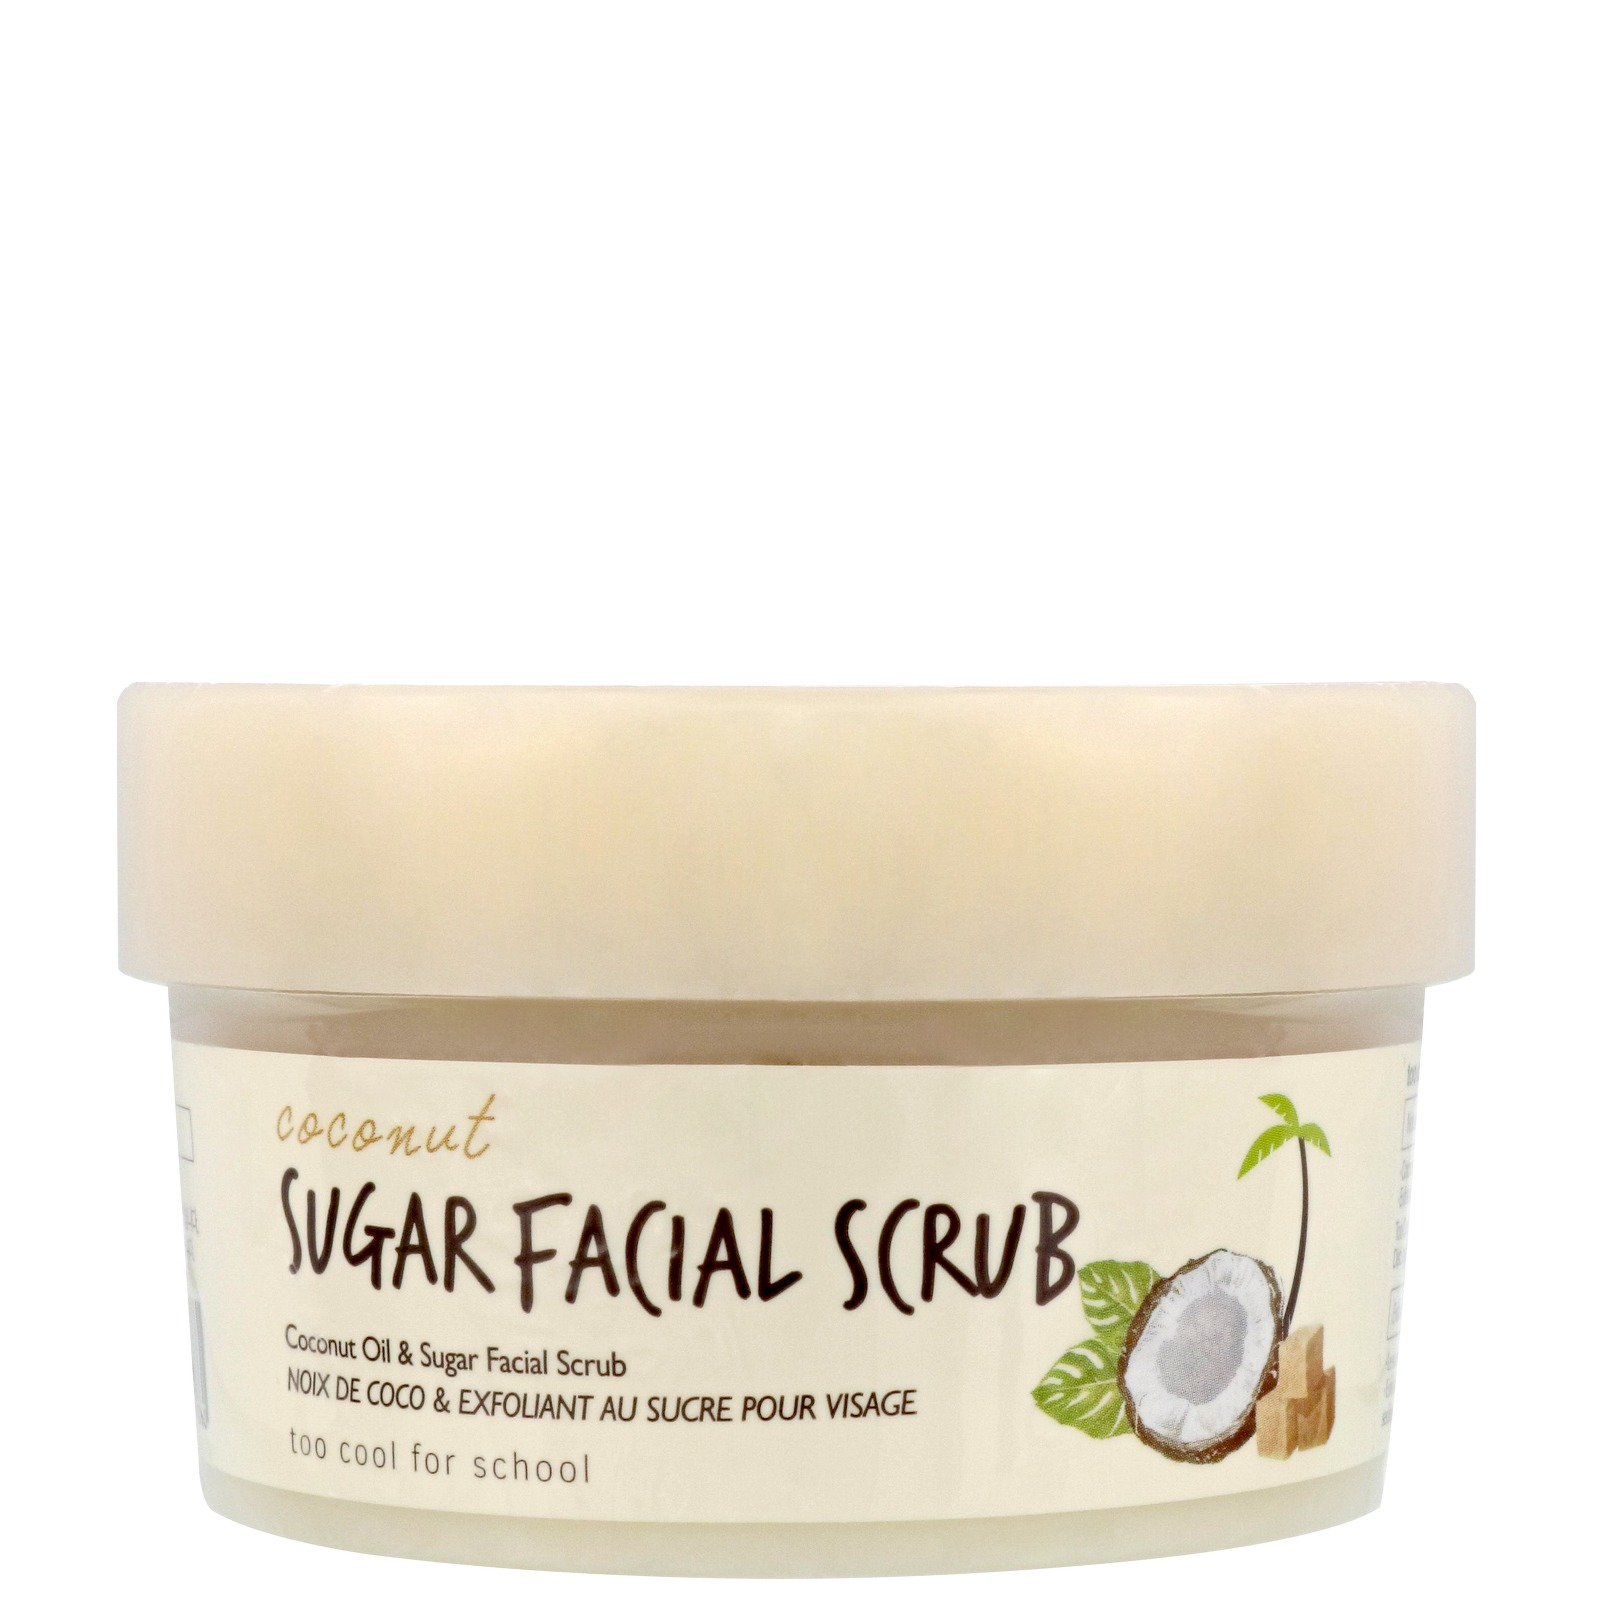 too cool for school Skincare Coconut Sugar Facial Scrub 100ml